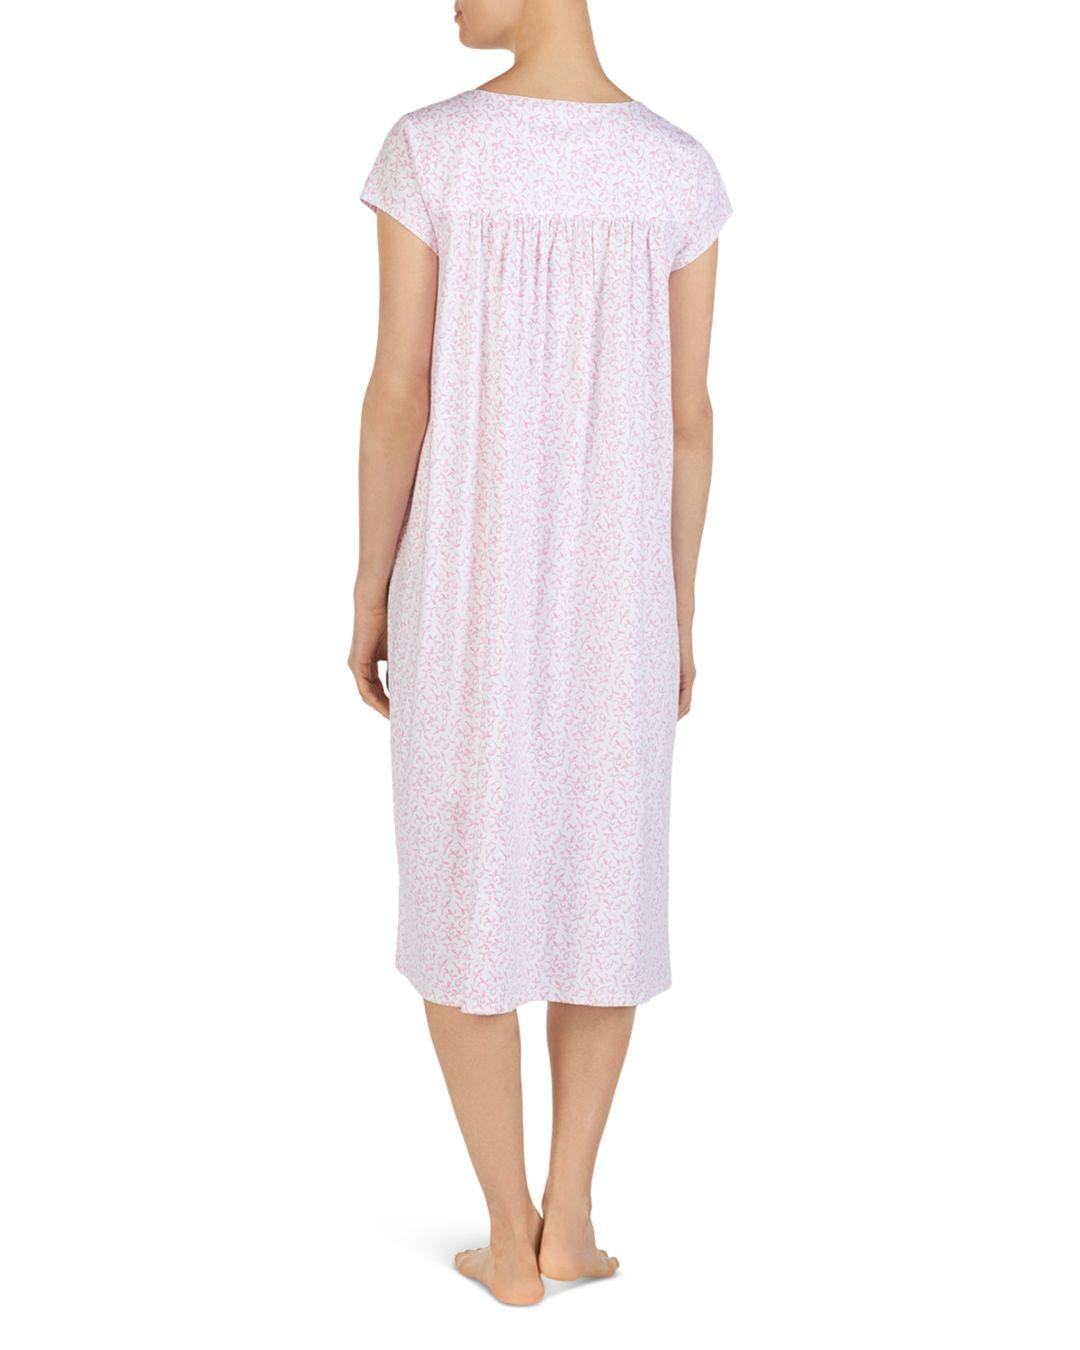 1d1e951bc9 Lyst - Eileen West Ballet Floral Print Cap Sleeve Nightgown in Pink